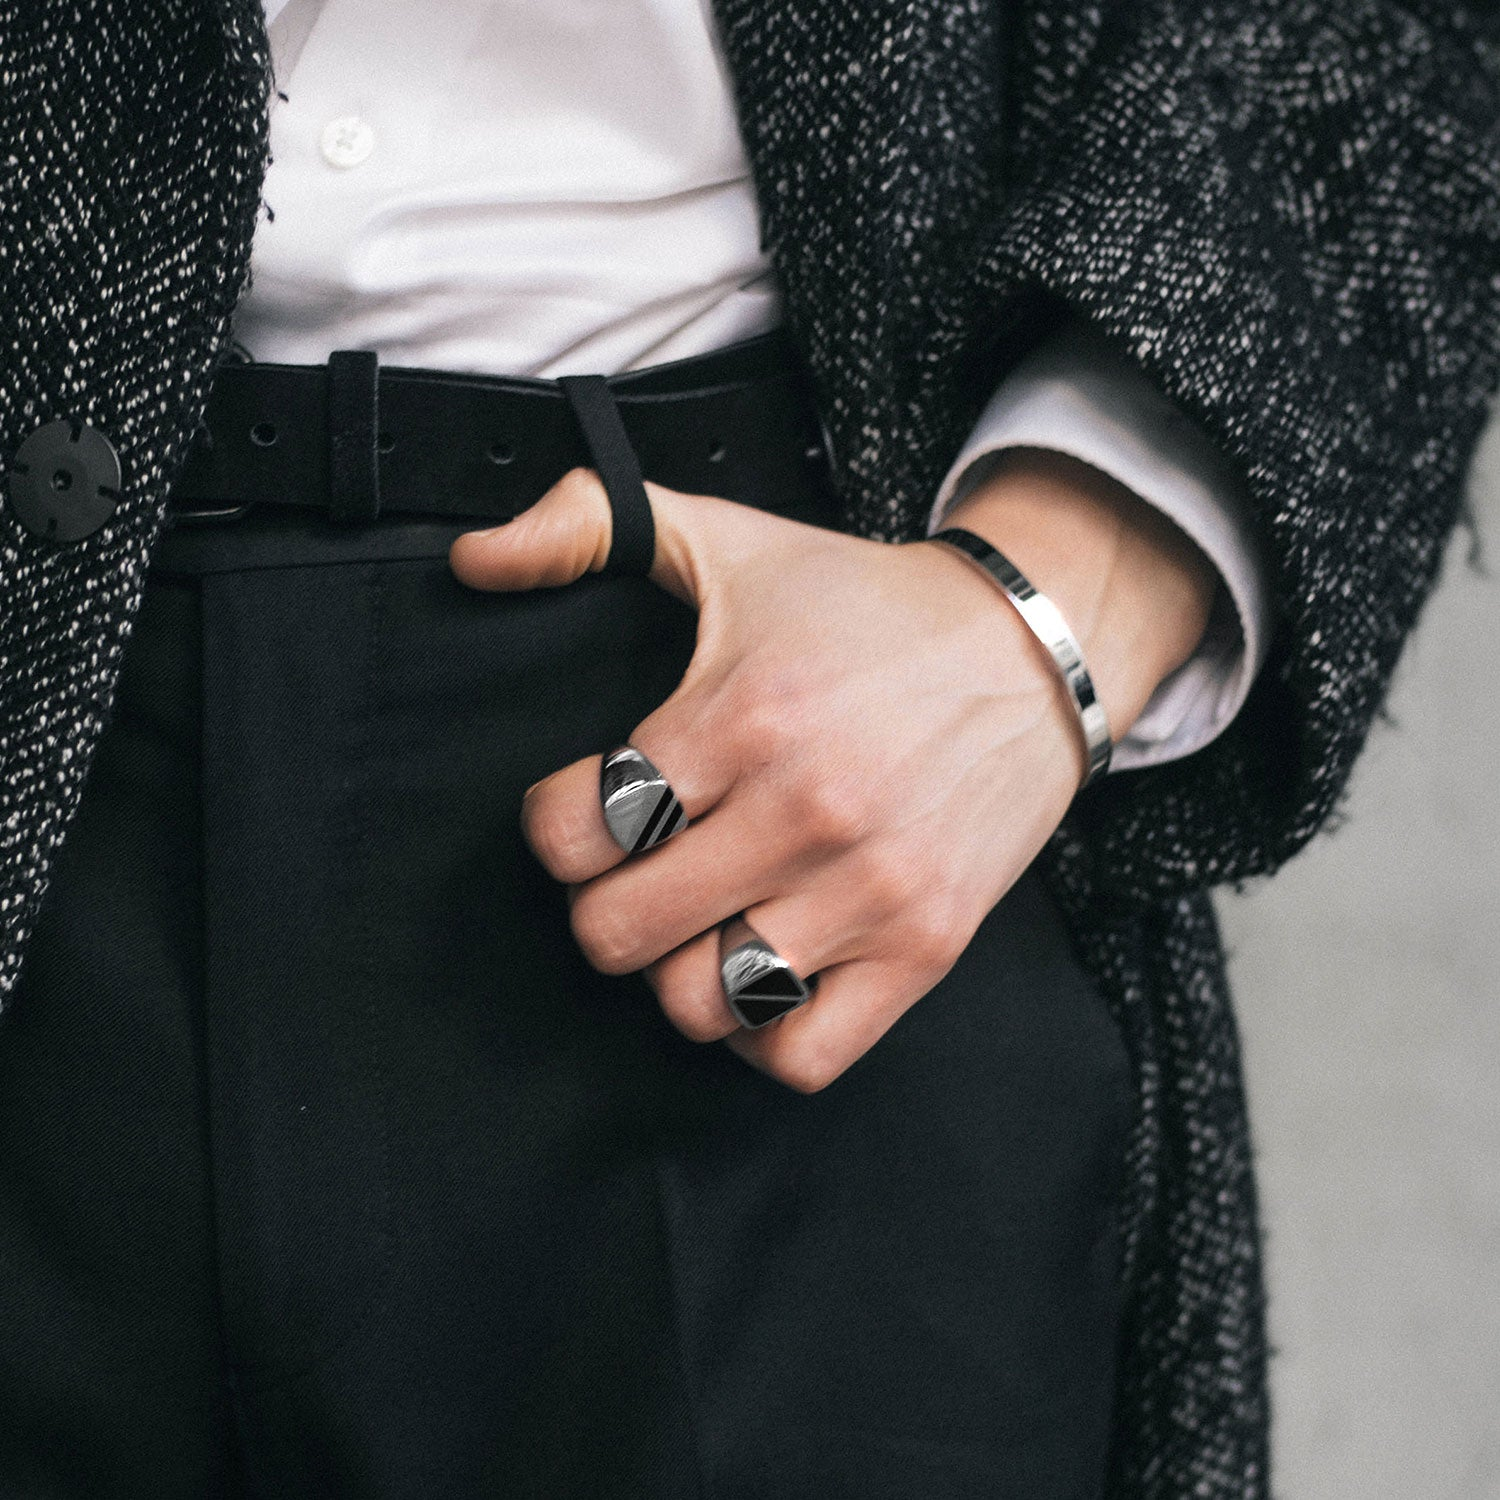 WEARING BRACELETS ISN'T AS FEMININE AS YOU THINK; HERE'S THE MASCULINE WAY TO DO IT